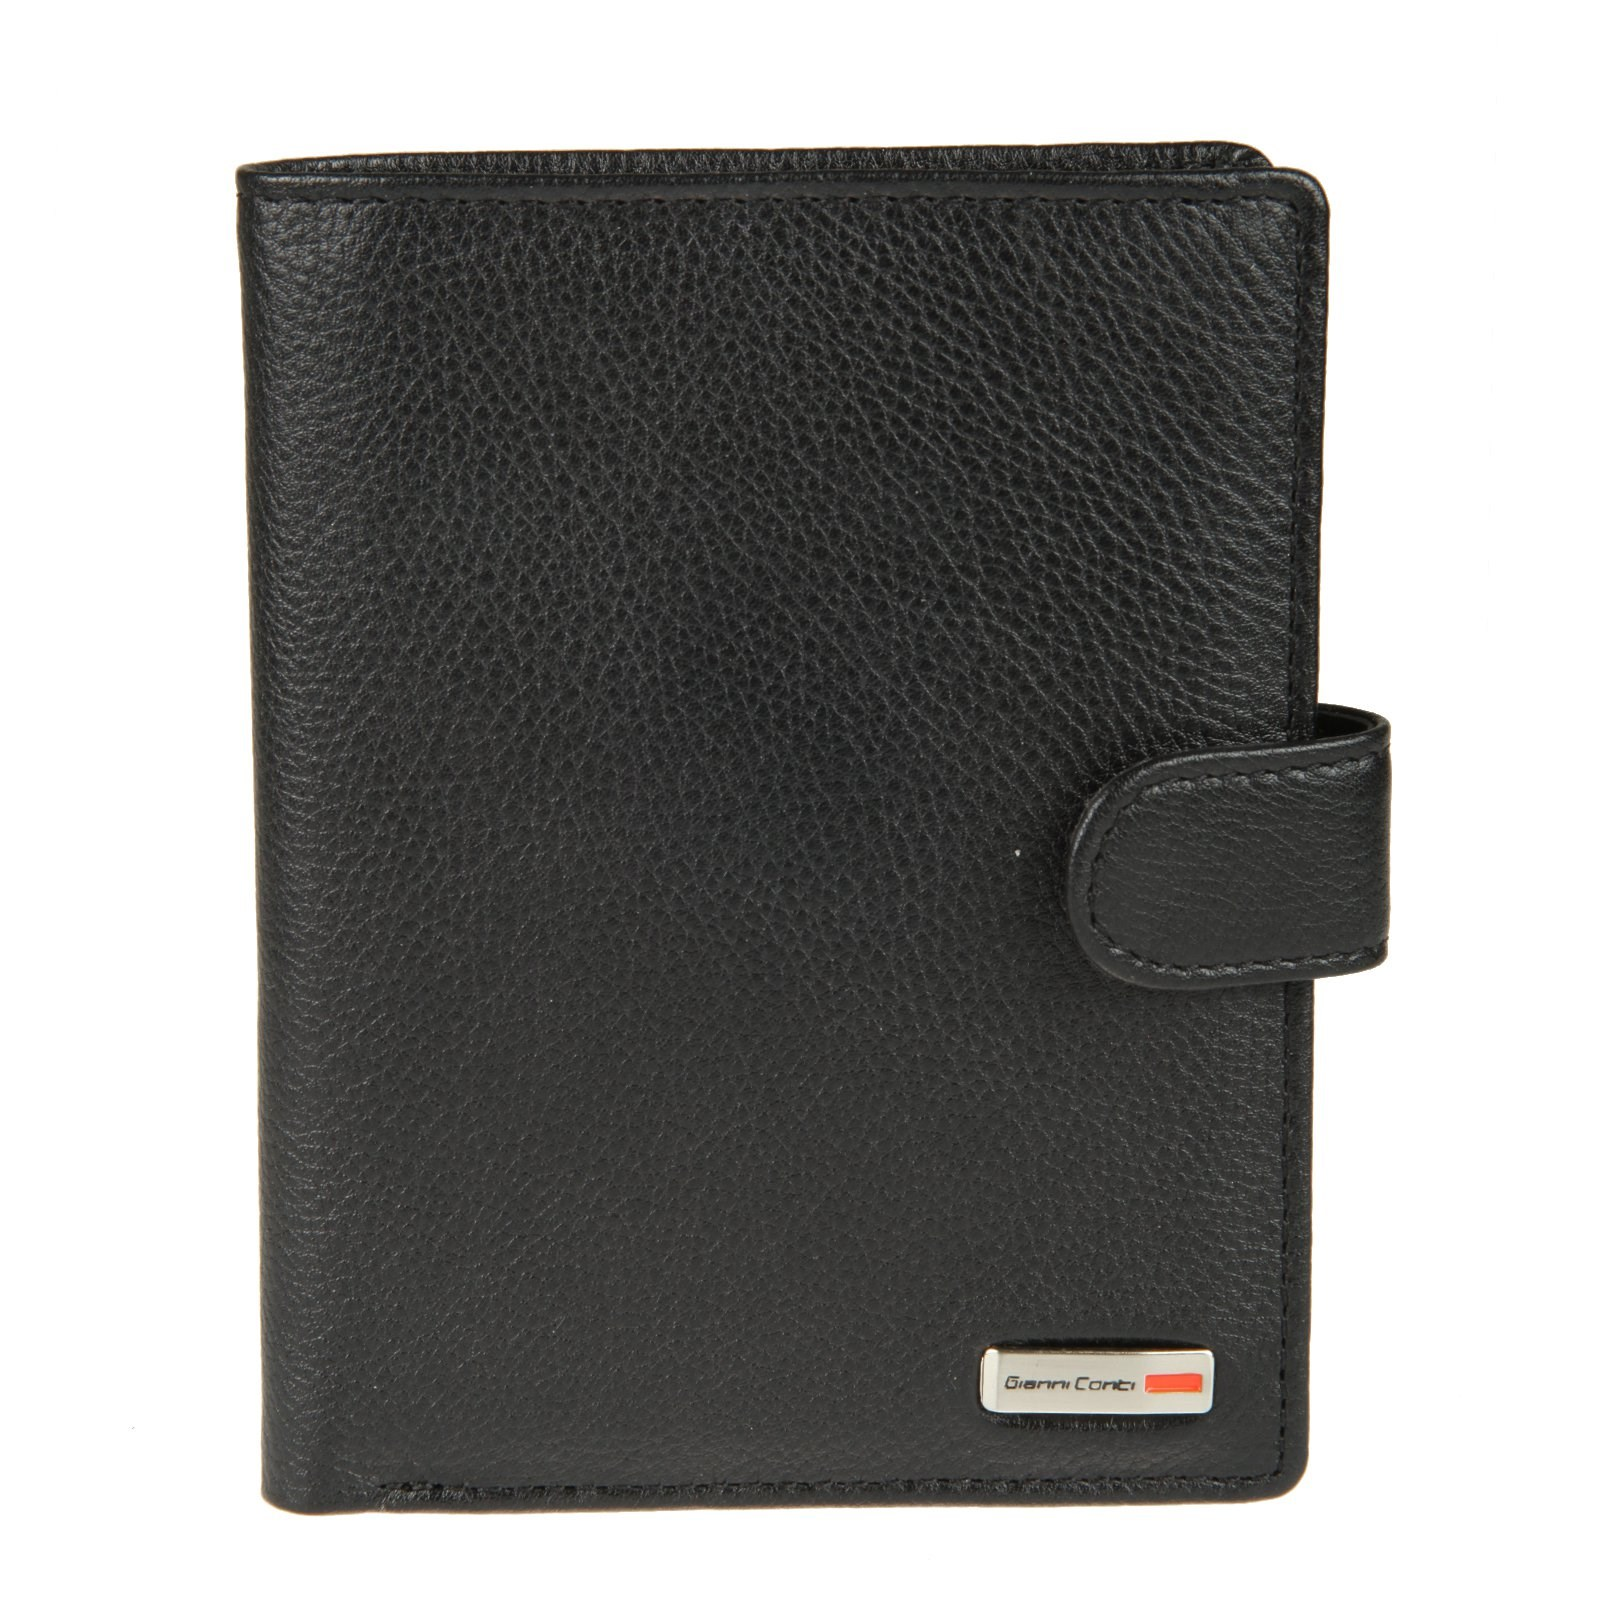 Coin Purse with the department for passport Gianni Conti 1607481 black casual wallets for men top purse men wallet with coin bag